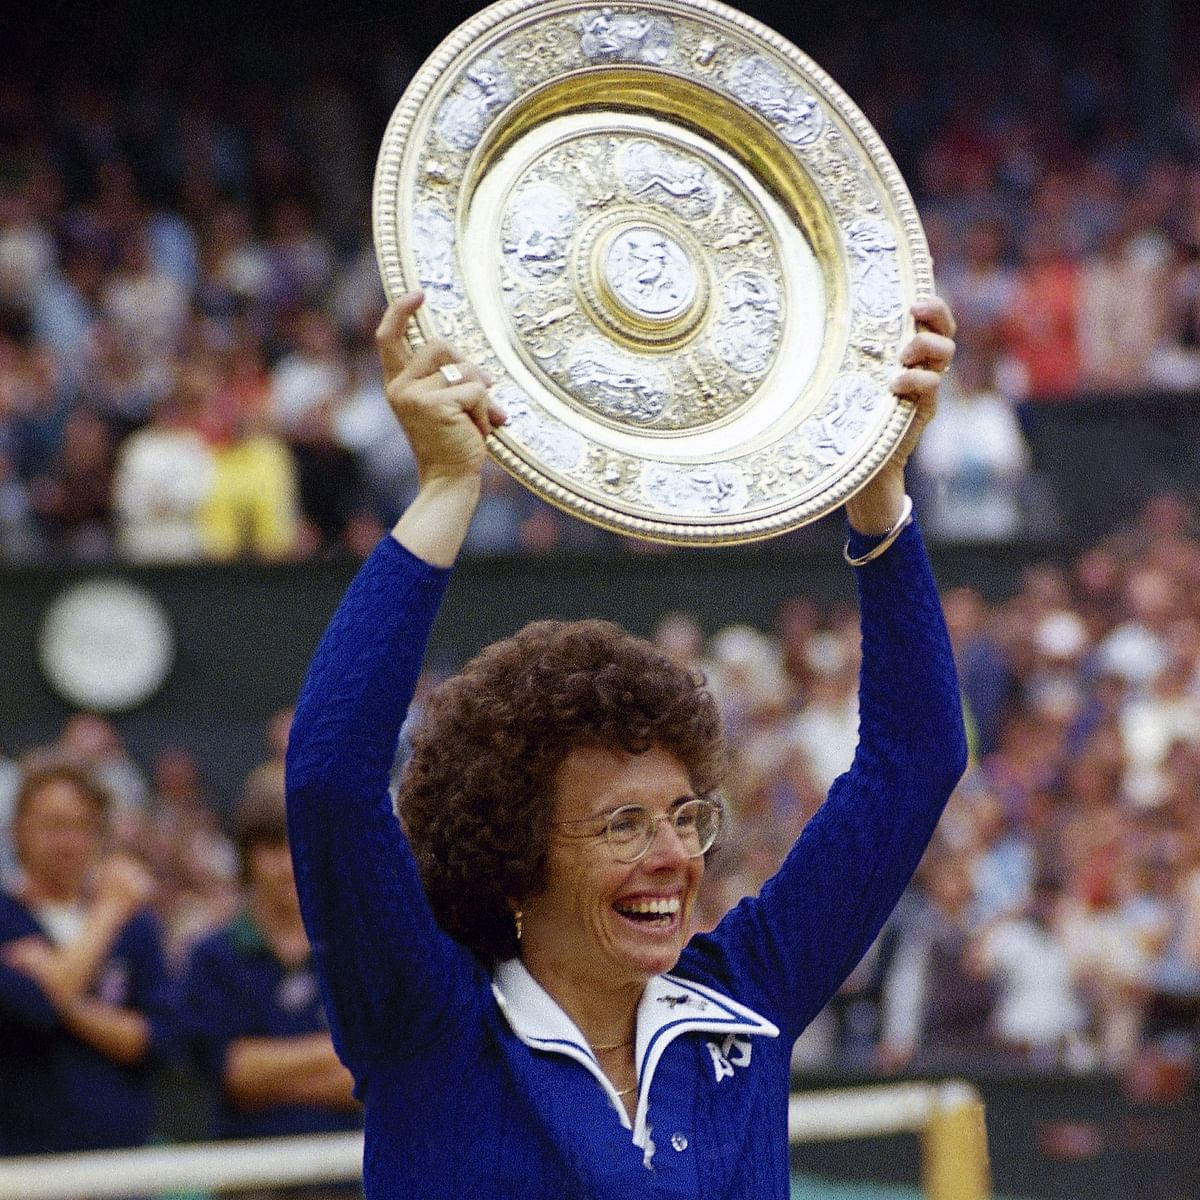 In this July 4, 1975 photo, U.S. tennis star Billie Jean King holds up the trophy after winning her sixth singles final at the All England Lawn Tennis Championships. She won three straight Wimbledon singles titles from 1966-68 and  a further three in the 1970s as she amassed 12 major titles. In total, King&nbsp;won 39 Grand Slam titles. (Photo: AP)<a></a>